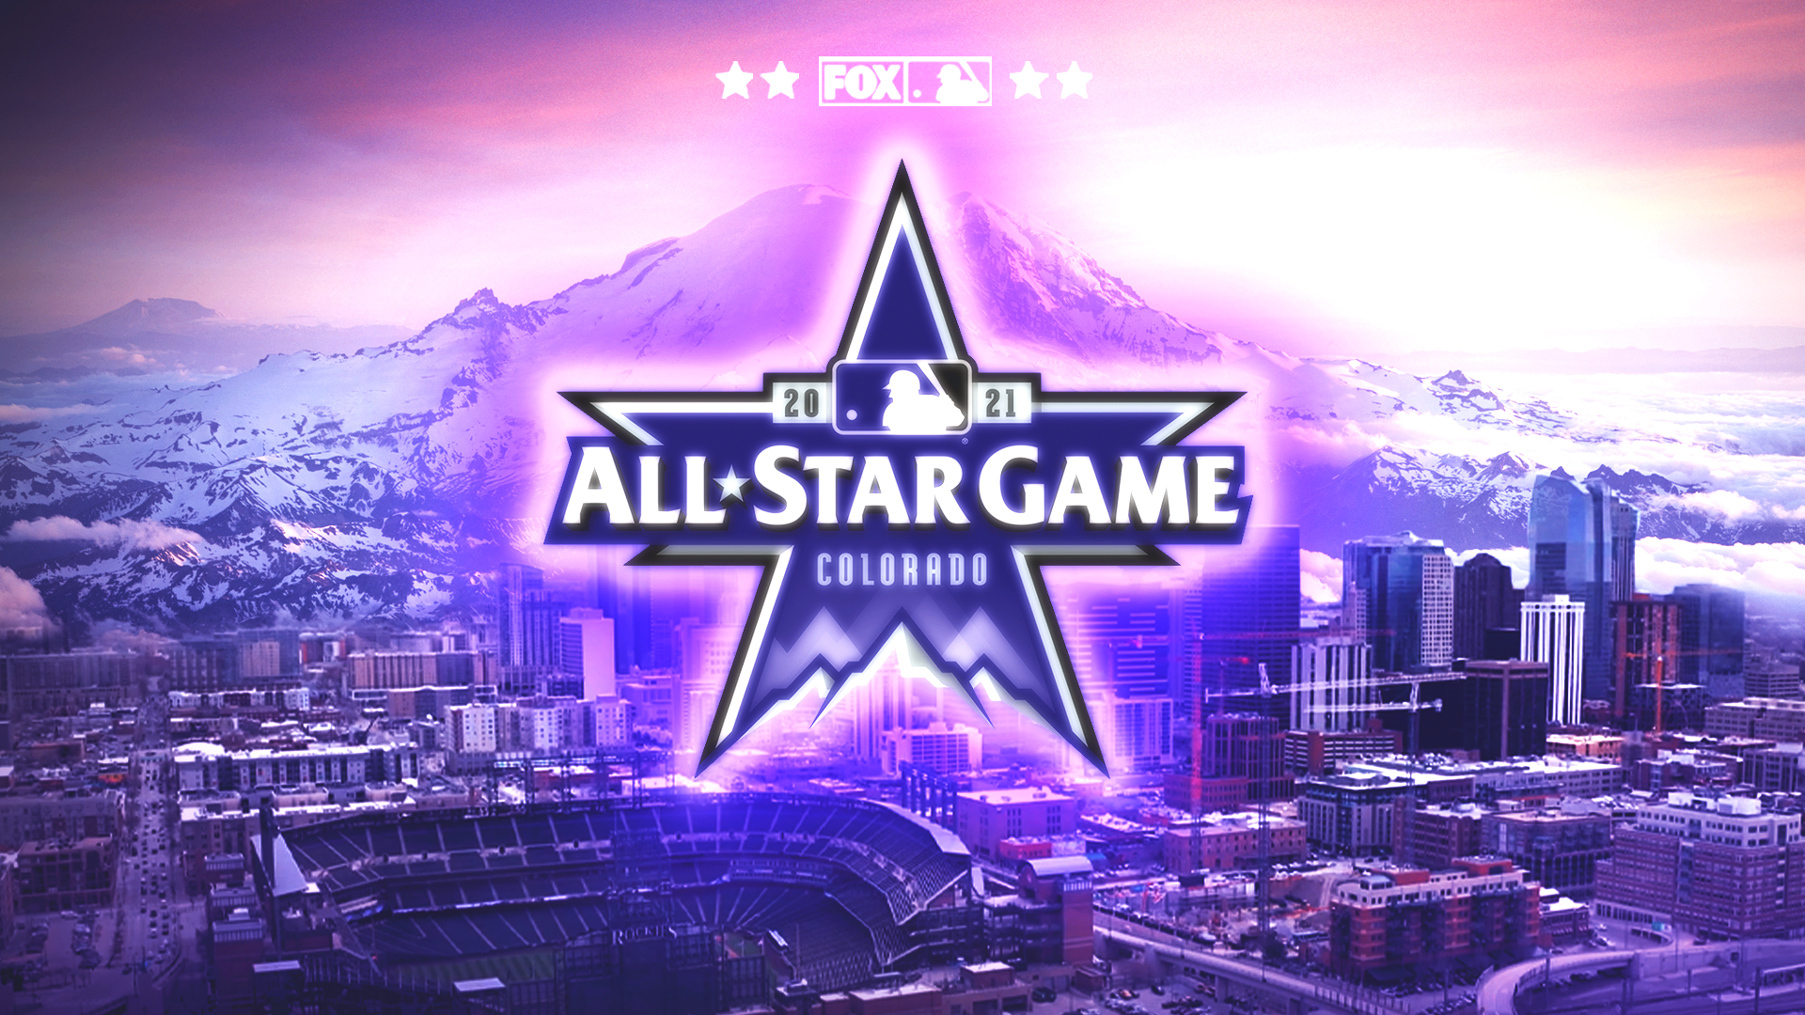 MLB All-Star Game 2021: How to watch, time, channel, lineups and more